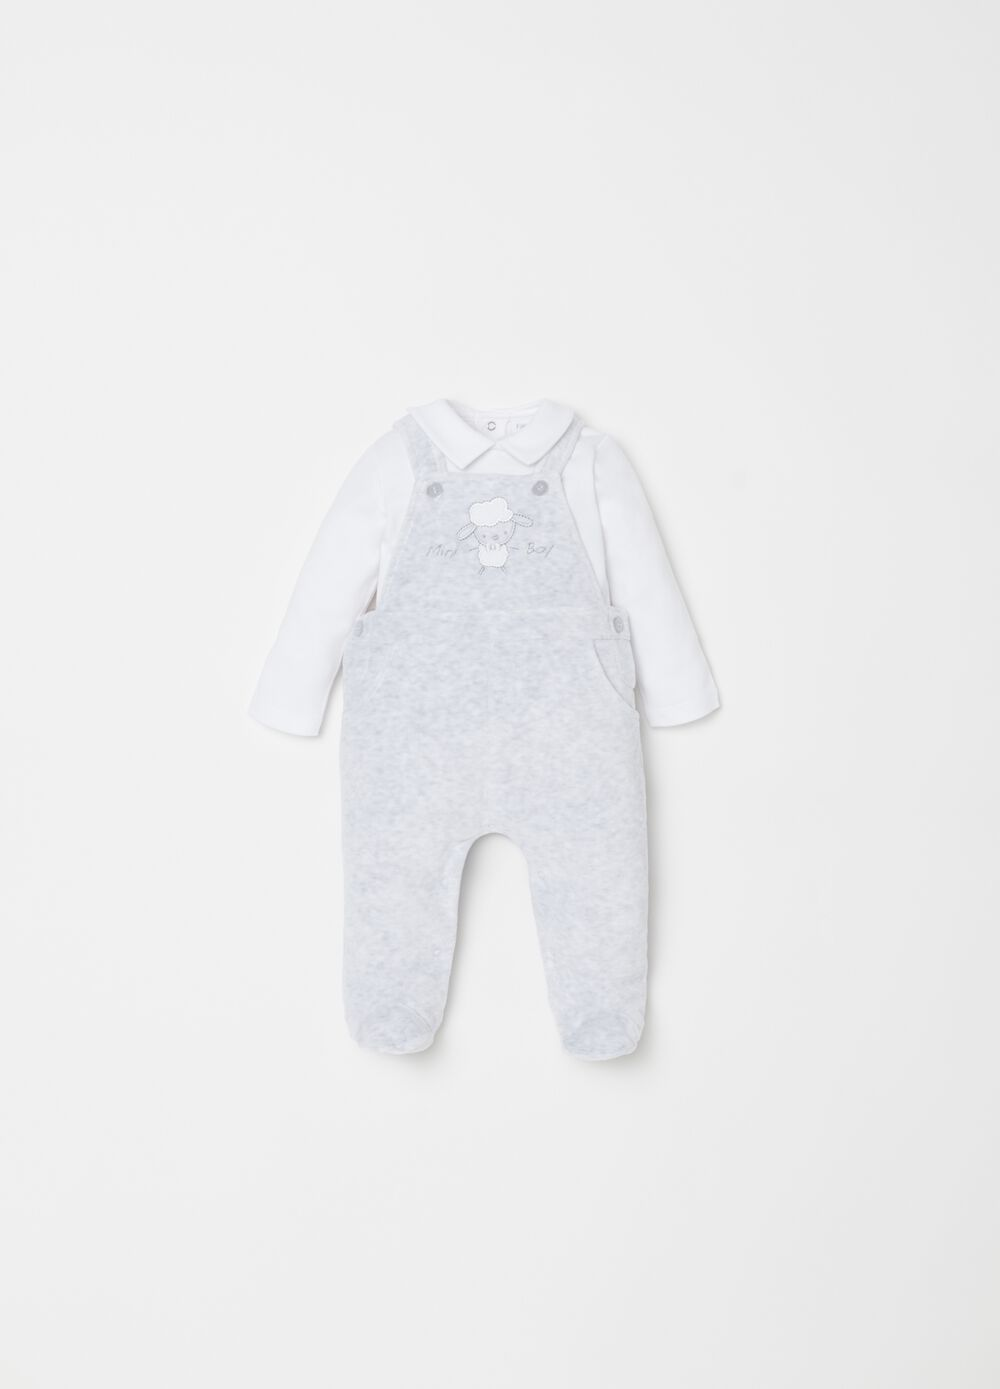 T-shirt and onesie set with sheep embroidery